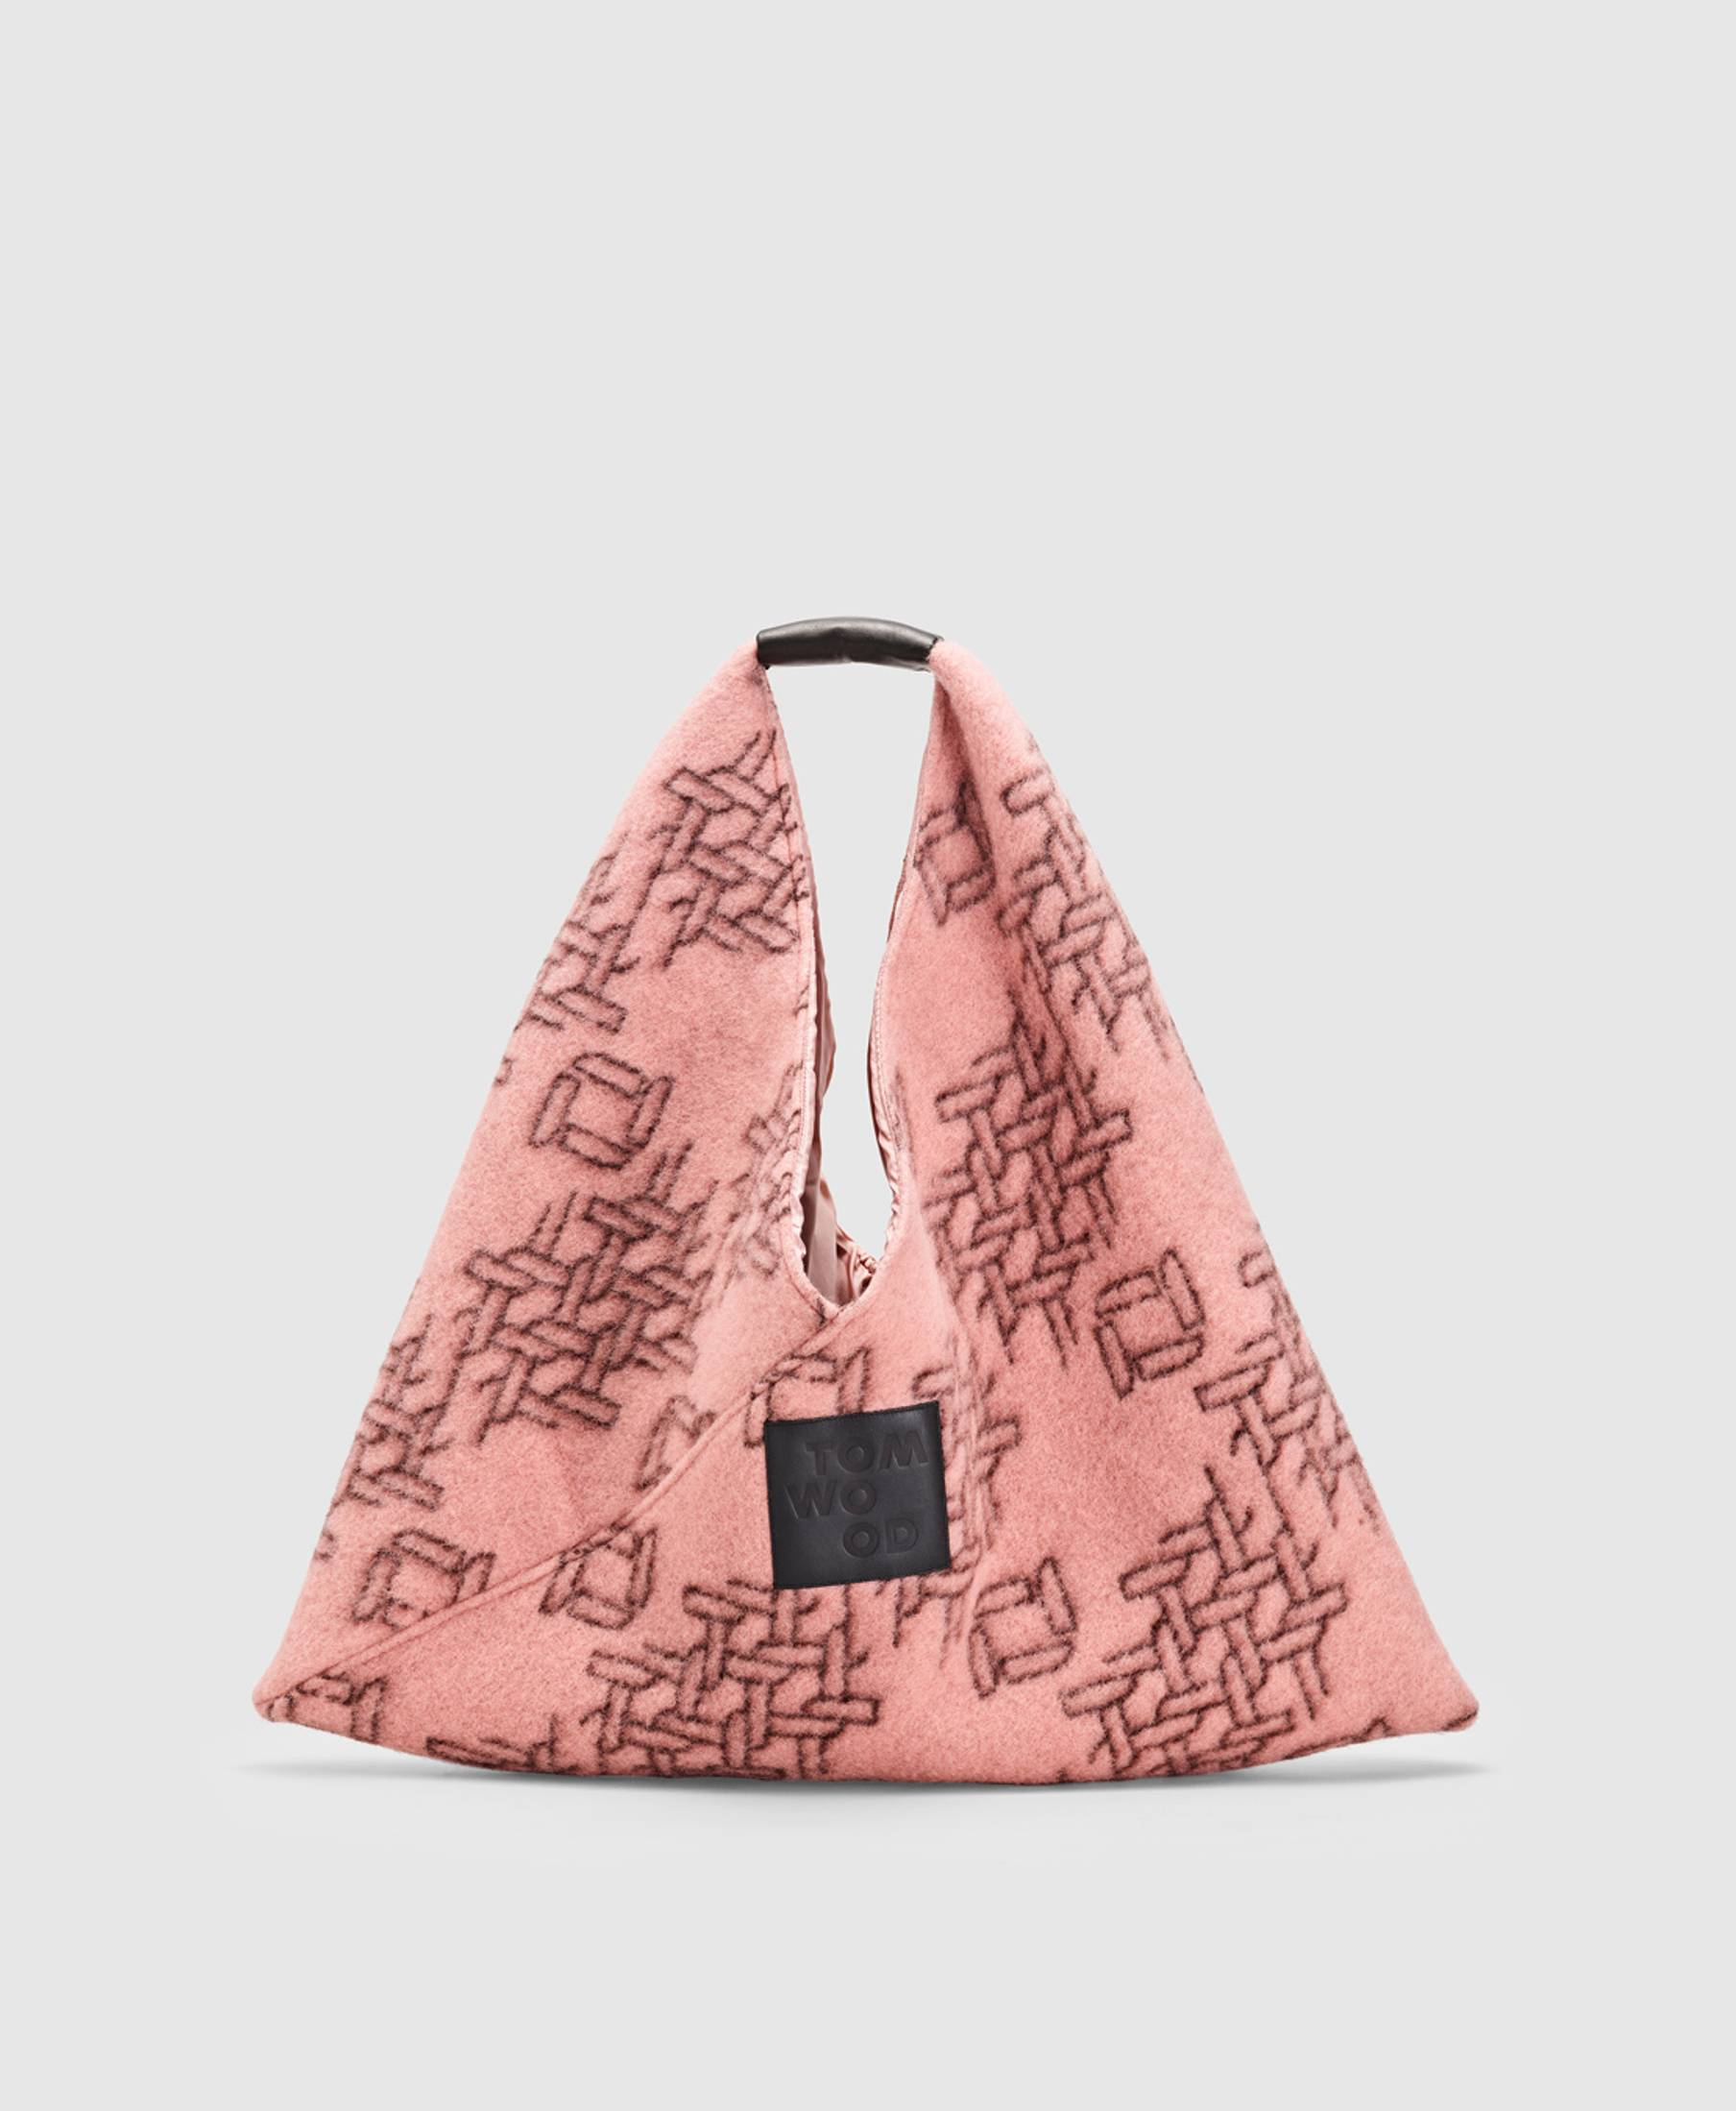 Triangle Bag Brown Pink